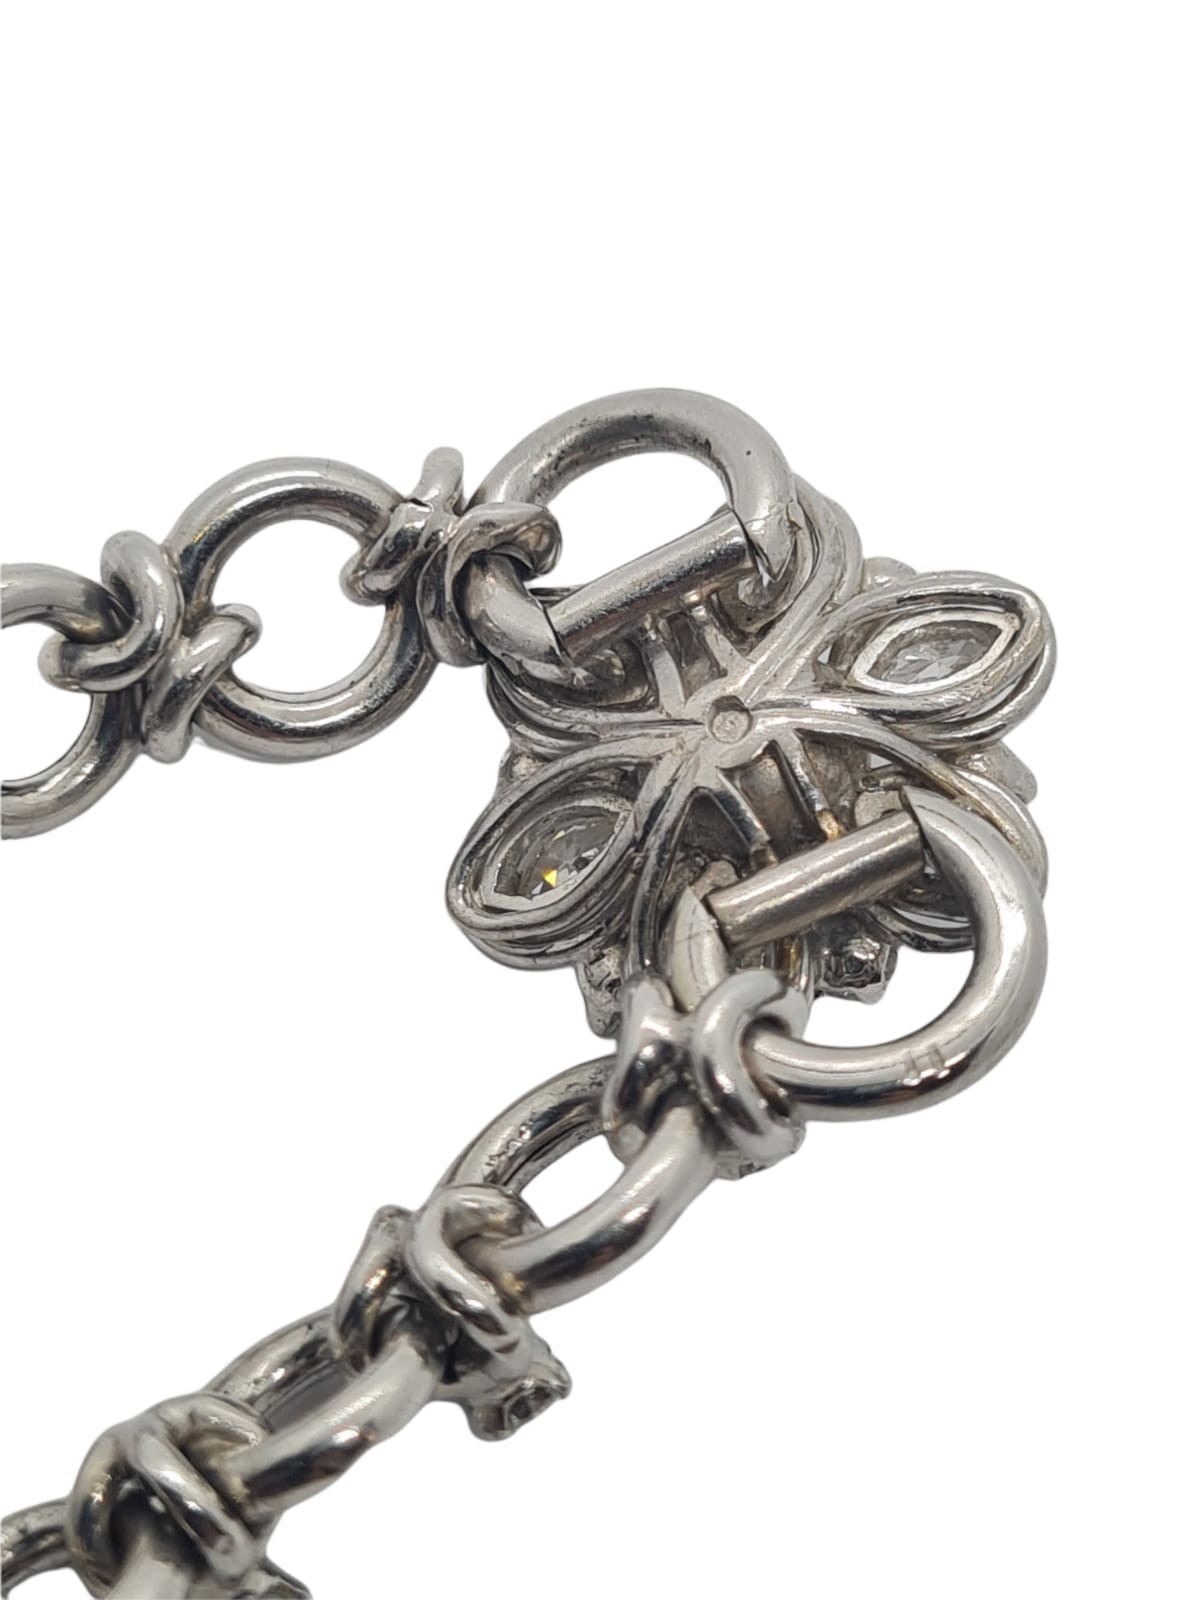 18k white gold French antique diamond and pearl set bracelet, flower design, weight 18.5g approx 2ct - Image 3 of 5